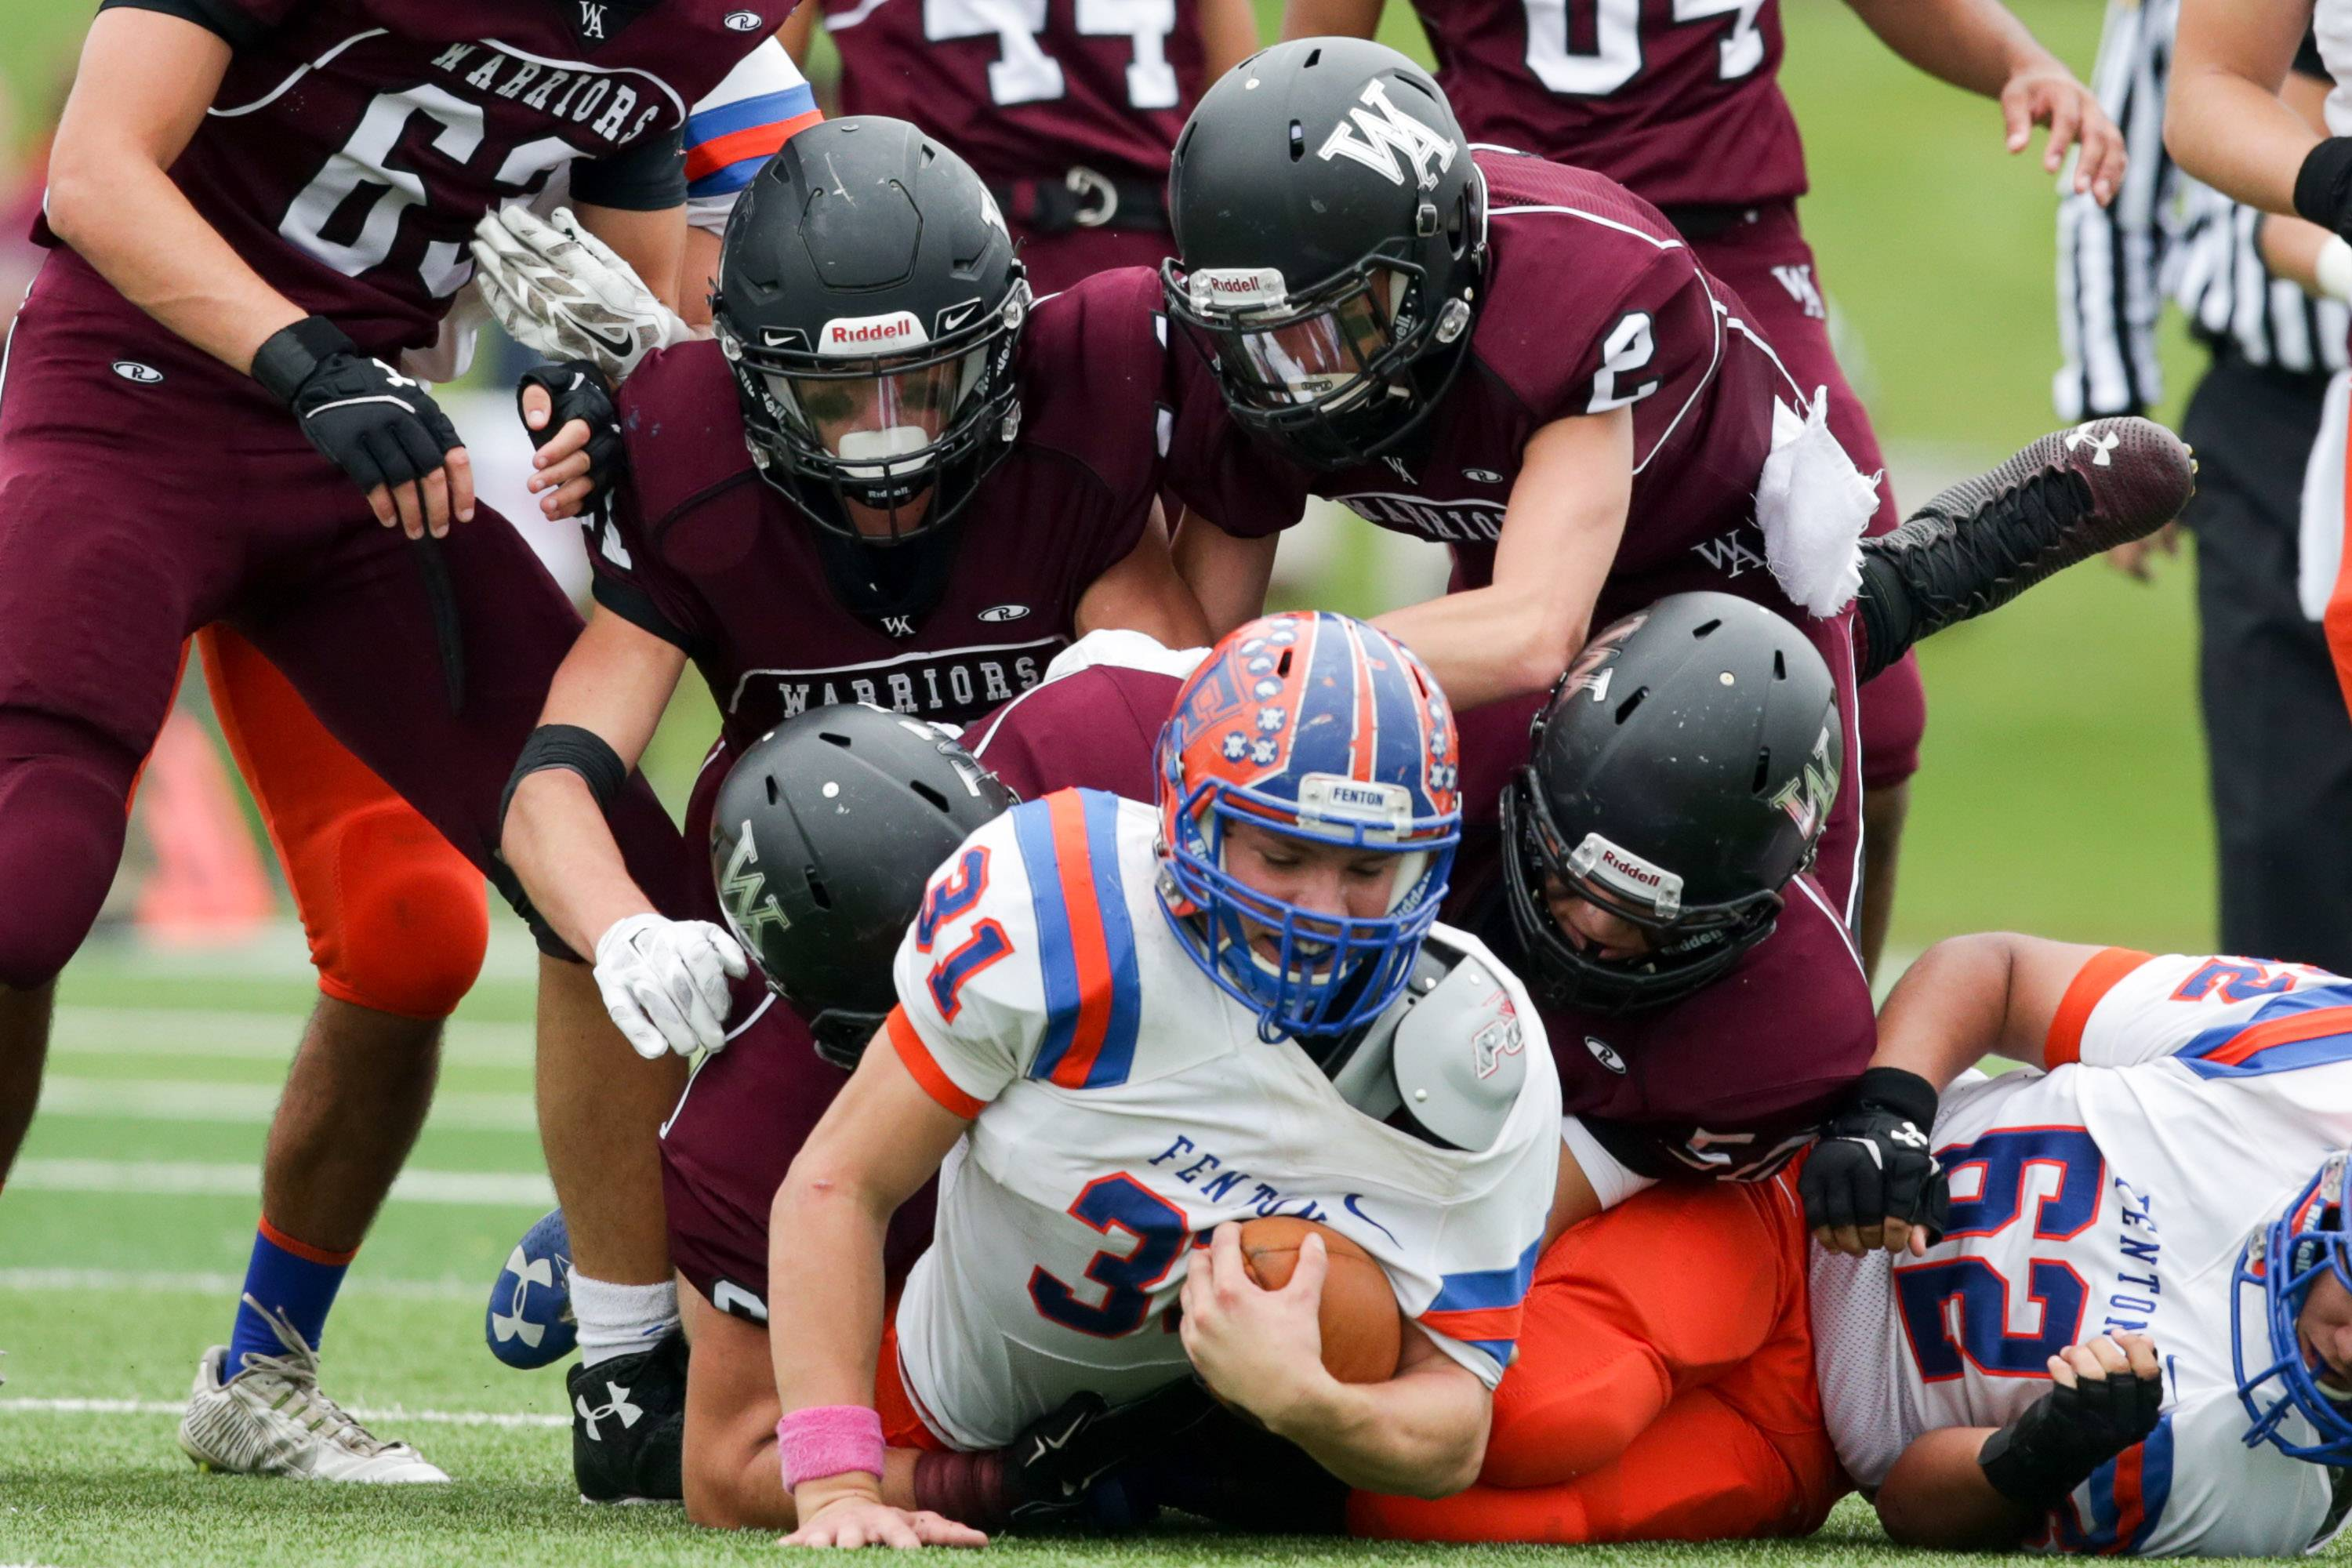 Photo by Sean KingFenton running back Dylan Butts (31) is brought down by four Wheaton Academy defenders at Wheaton Academy  in West Chicago Saturday.